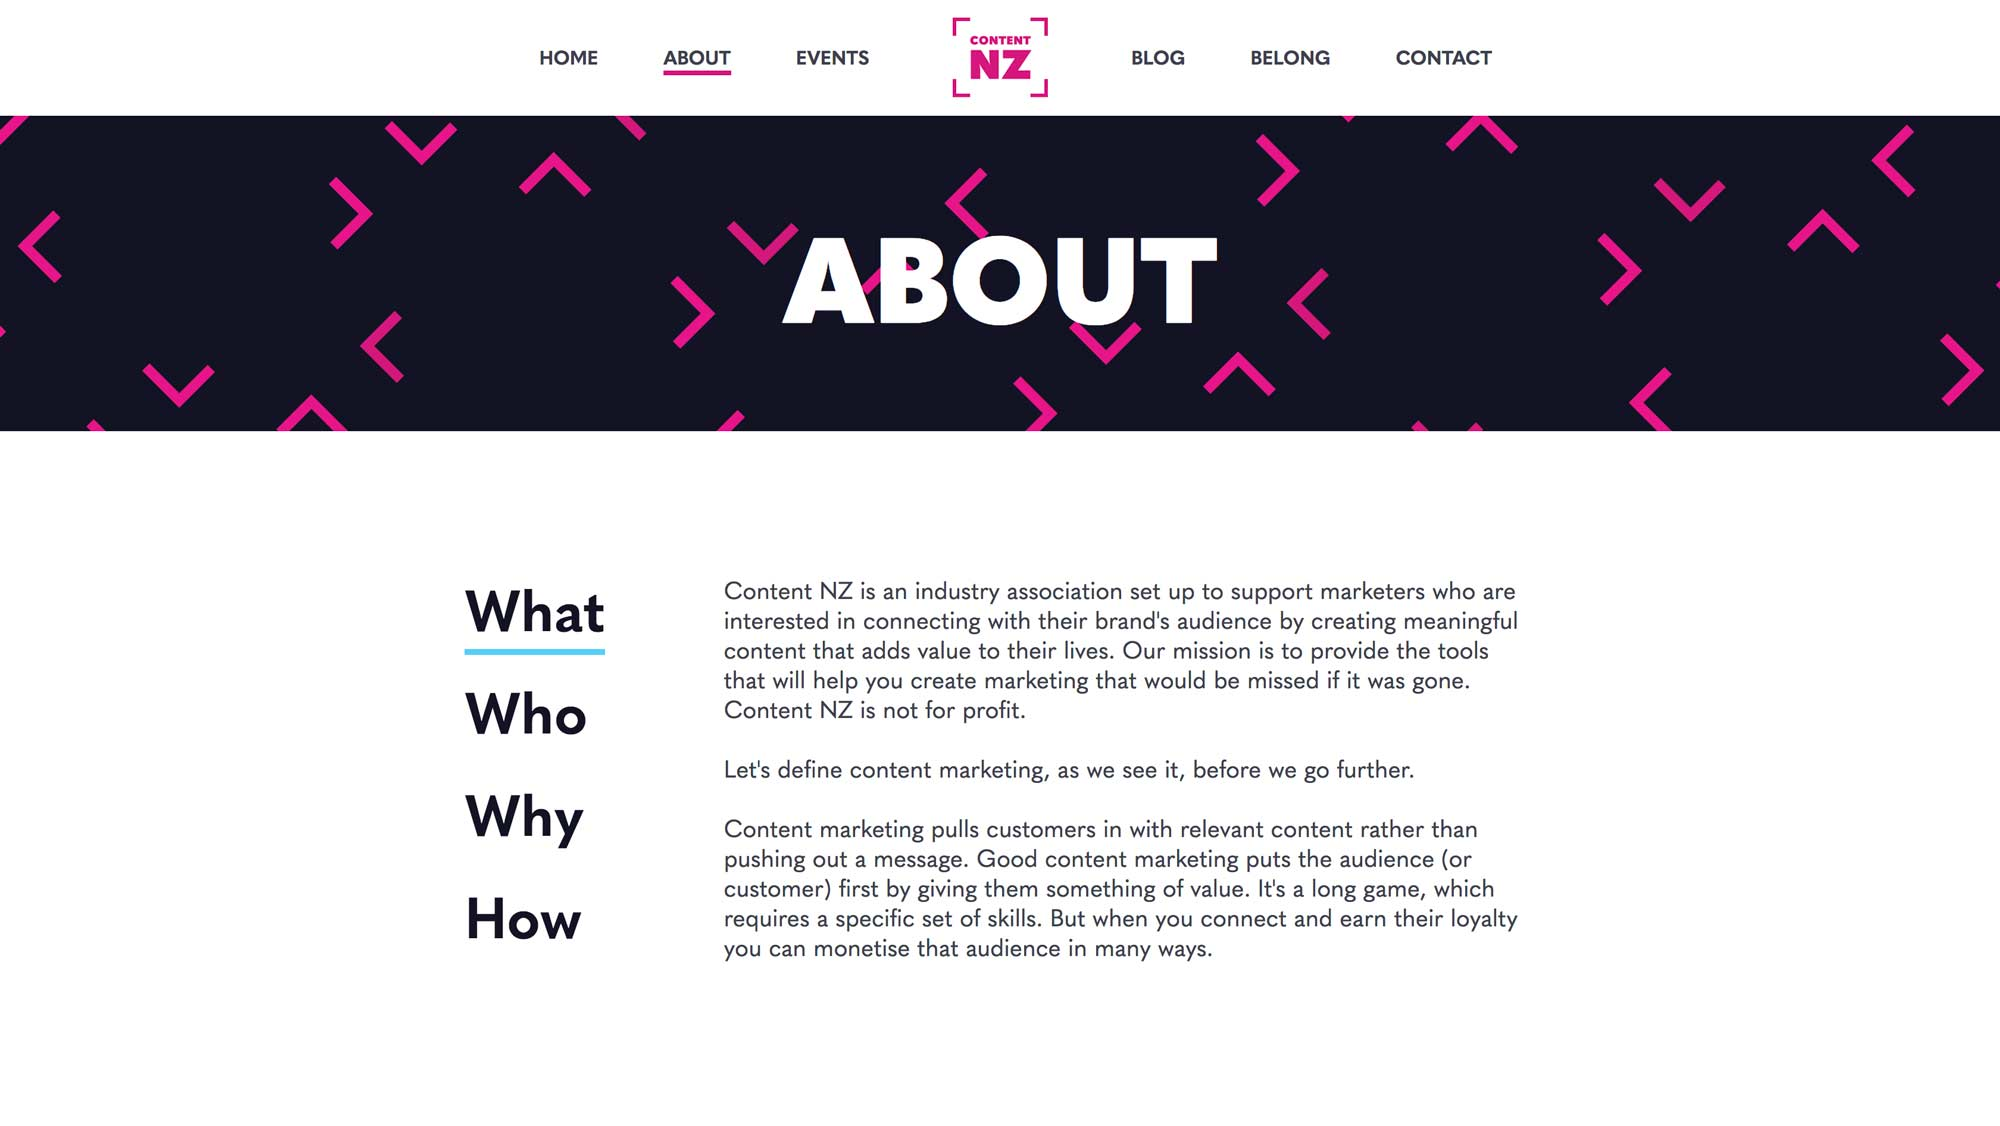 Content NZ - about page design